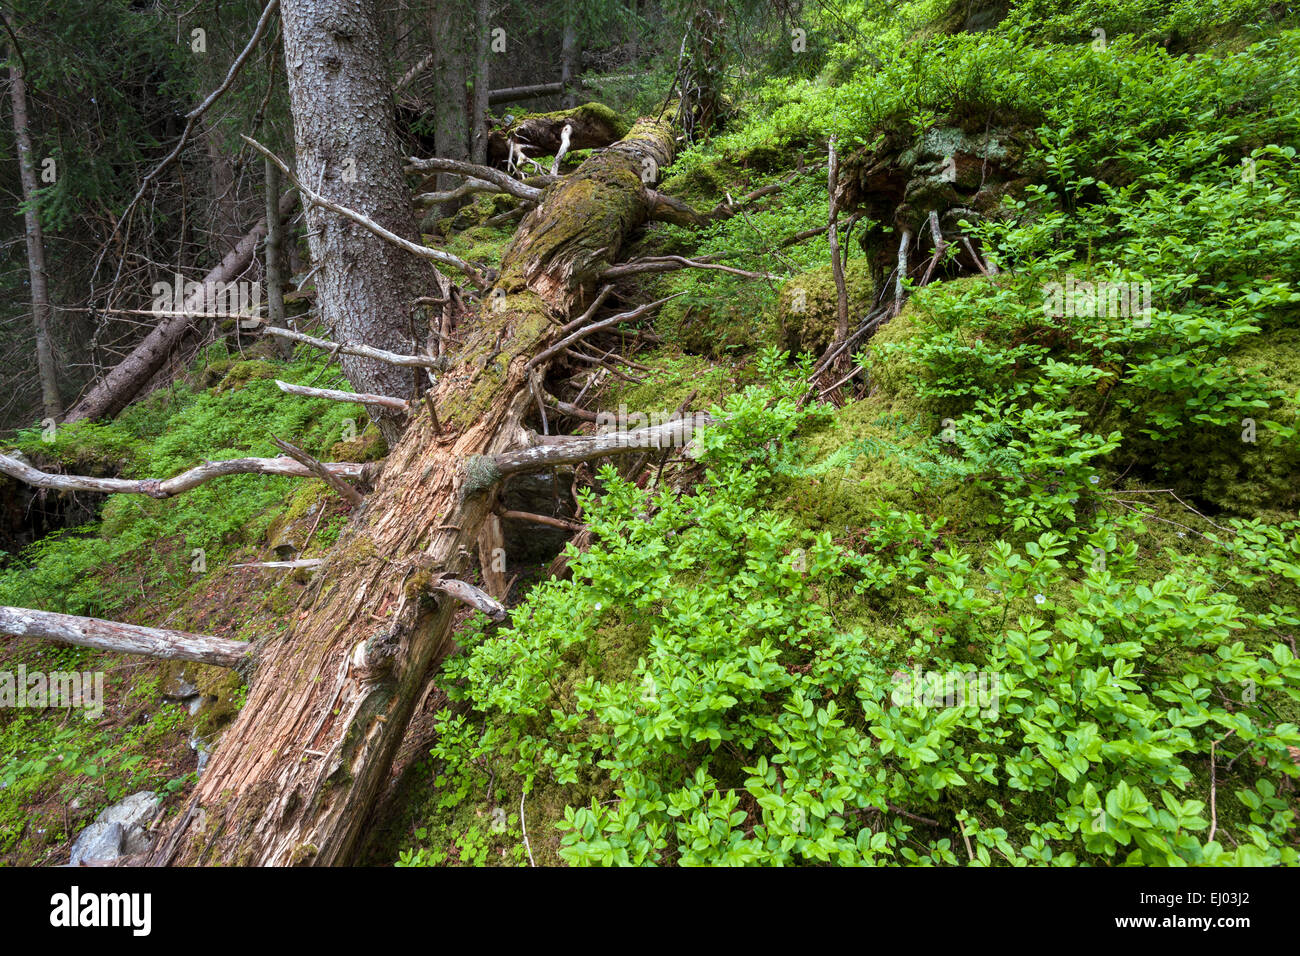 Primeval forest, forest, Scatlé, Switzerland, Europe, canton, Graubünden, Grisons, Surselva, trees, spruces, - Stock Image